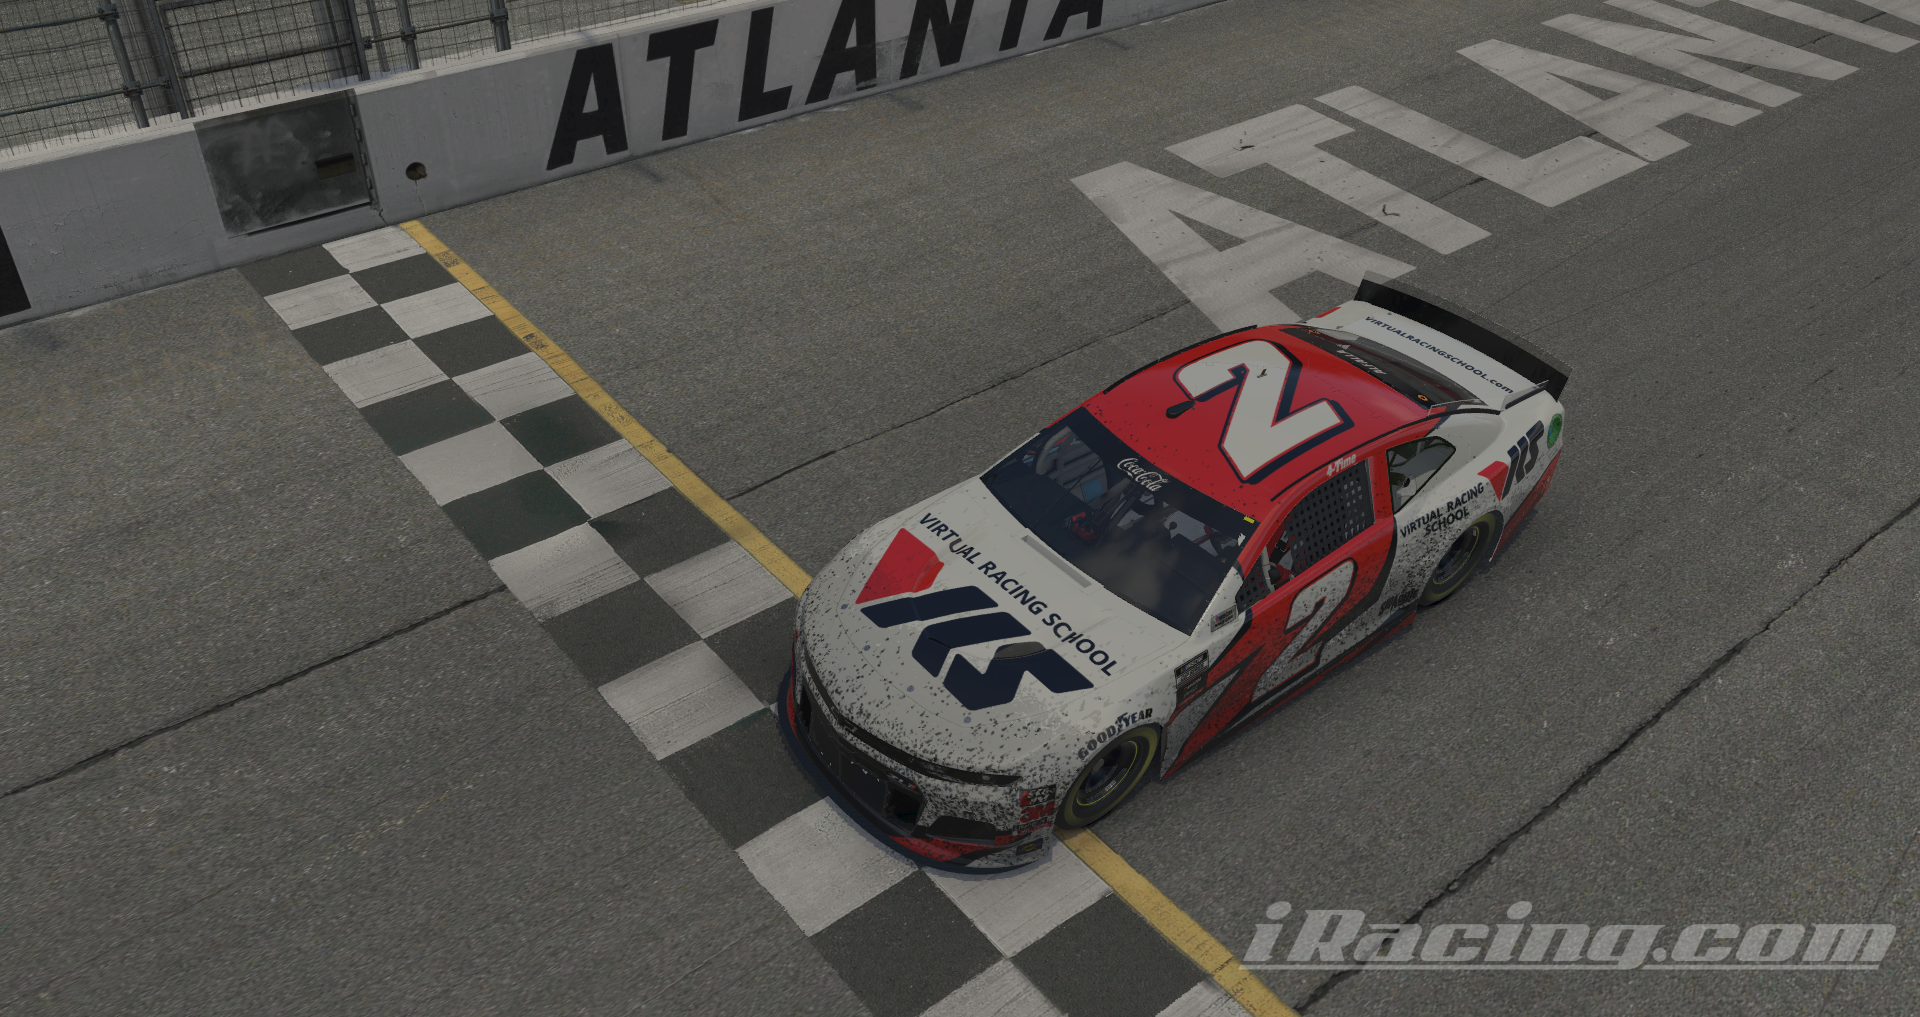 iRacing enjoys successful year to date